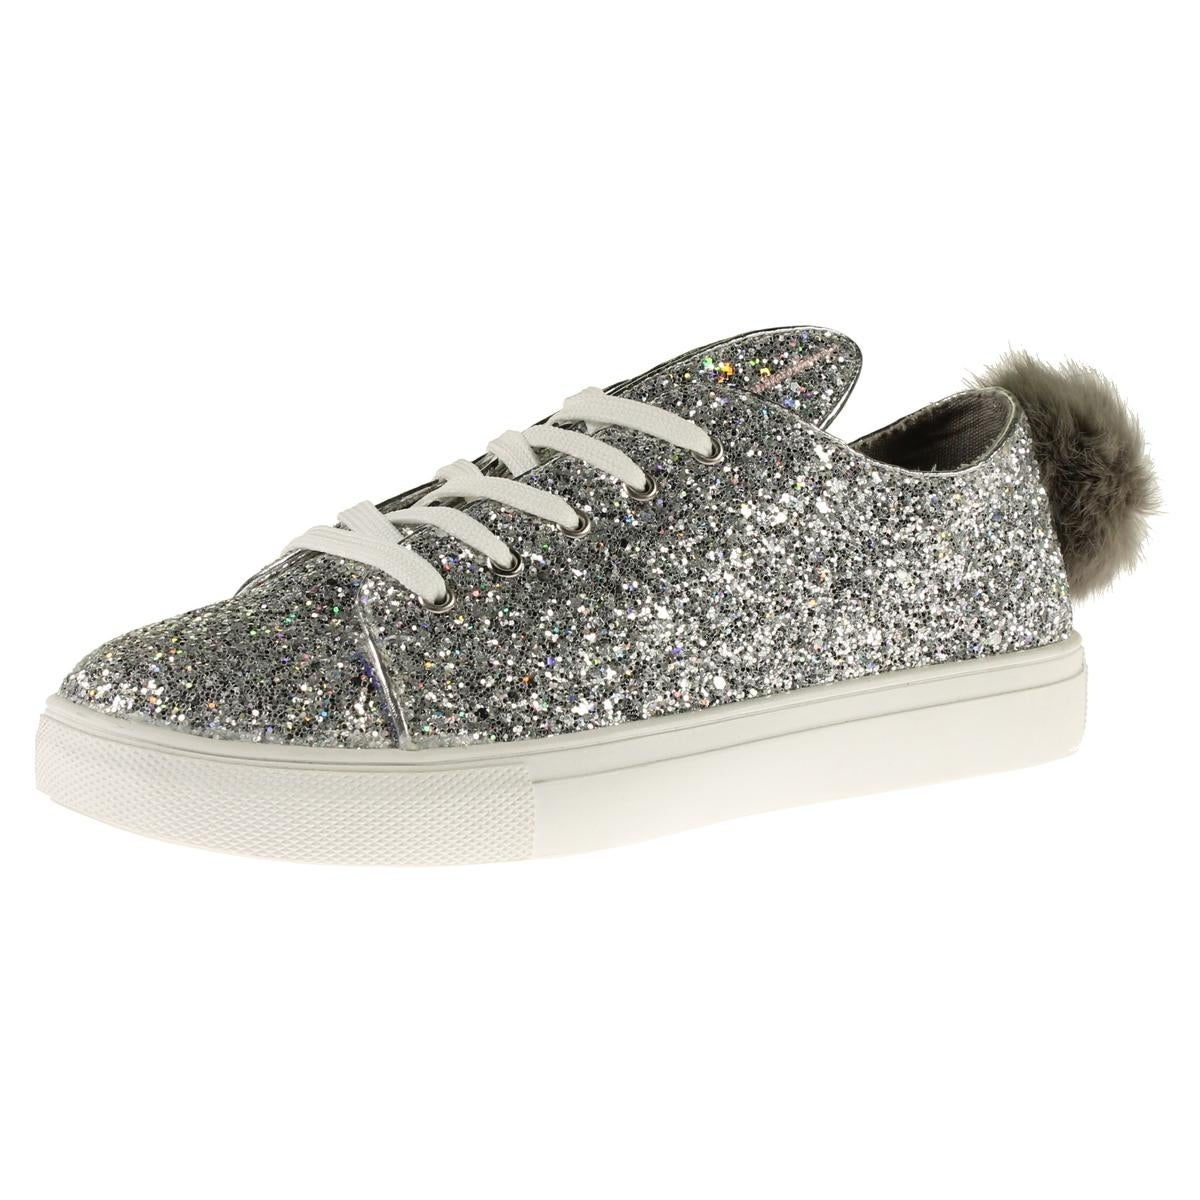 Steve Madden Womens Boca Fashion Sneakers Glitter Casual (2 options  available)